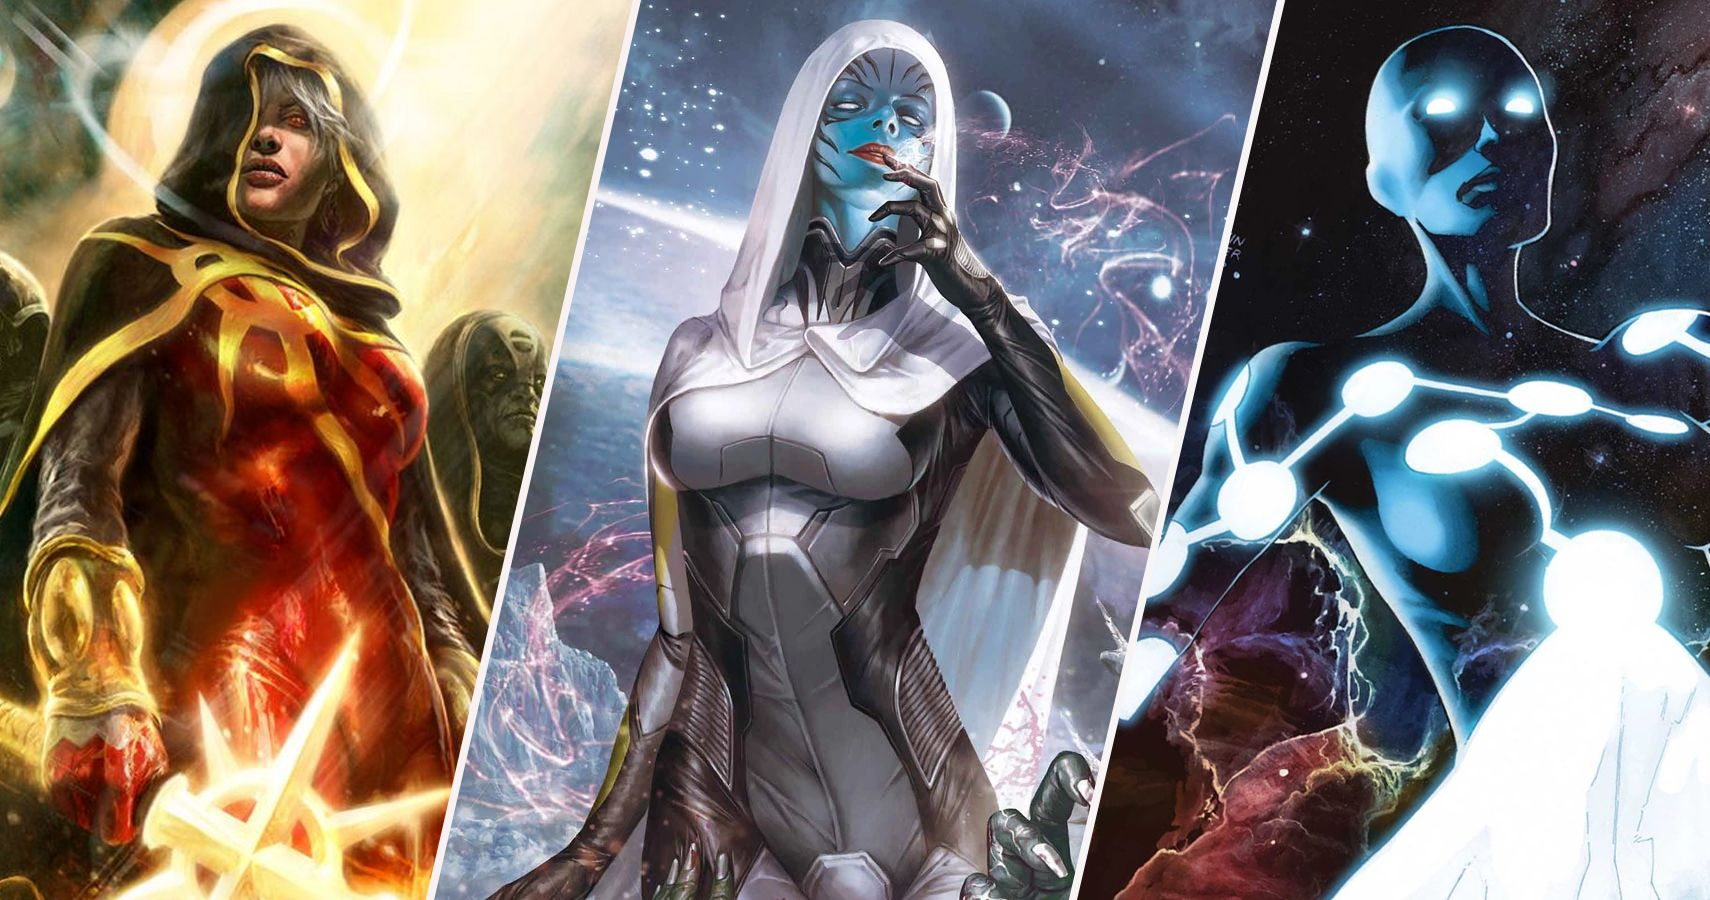 20 Powerful Female Marvel Characters We Hope To See In The